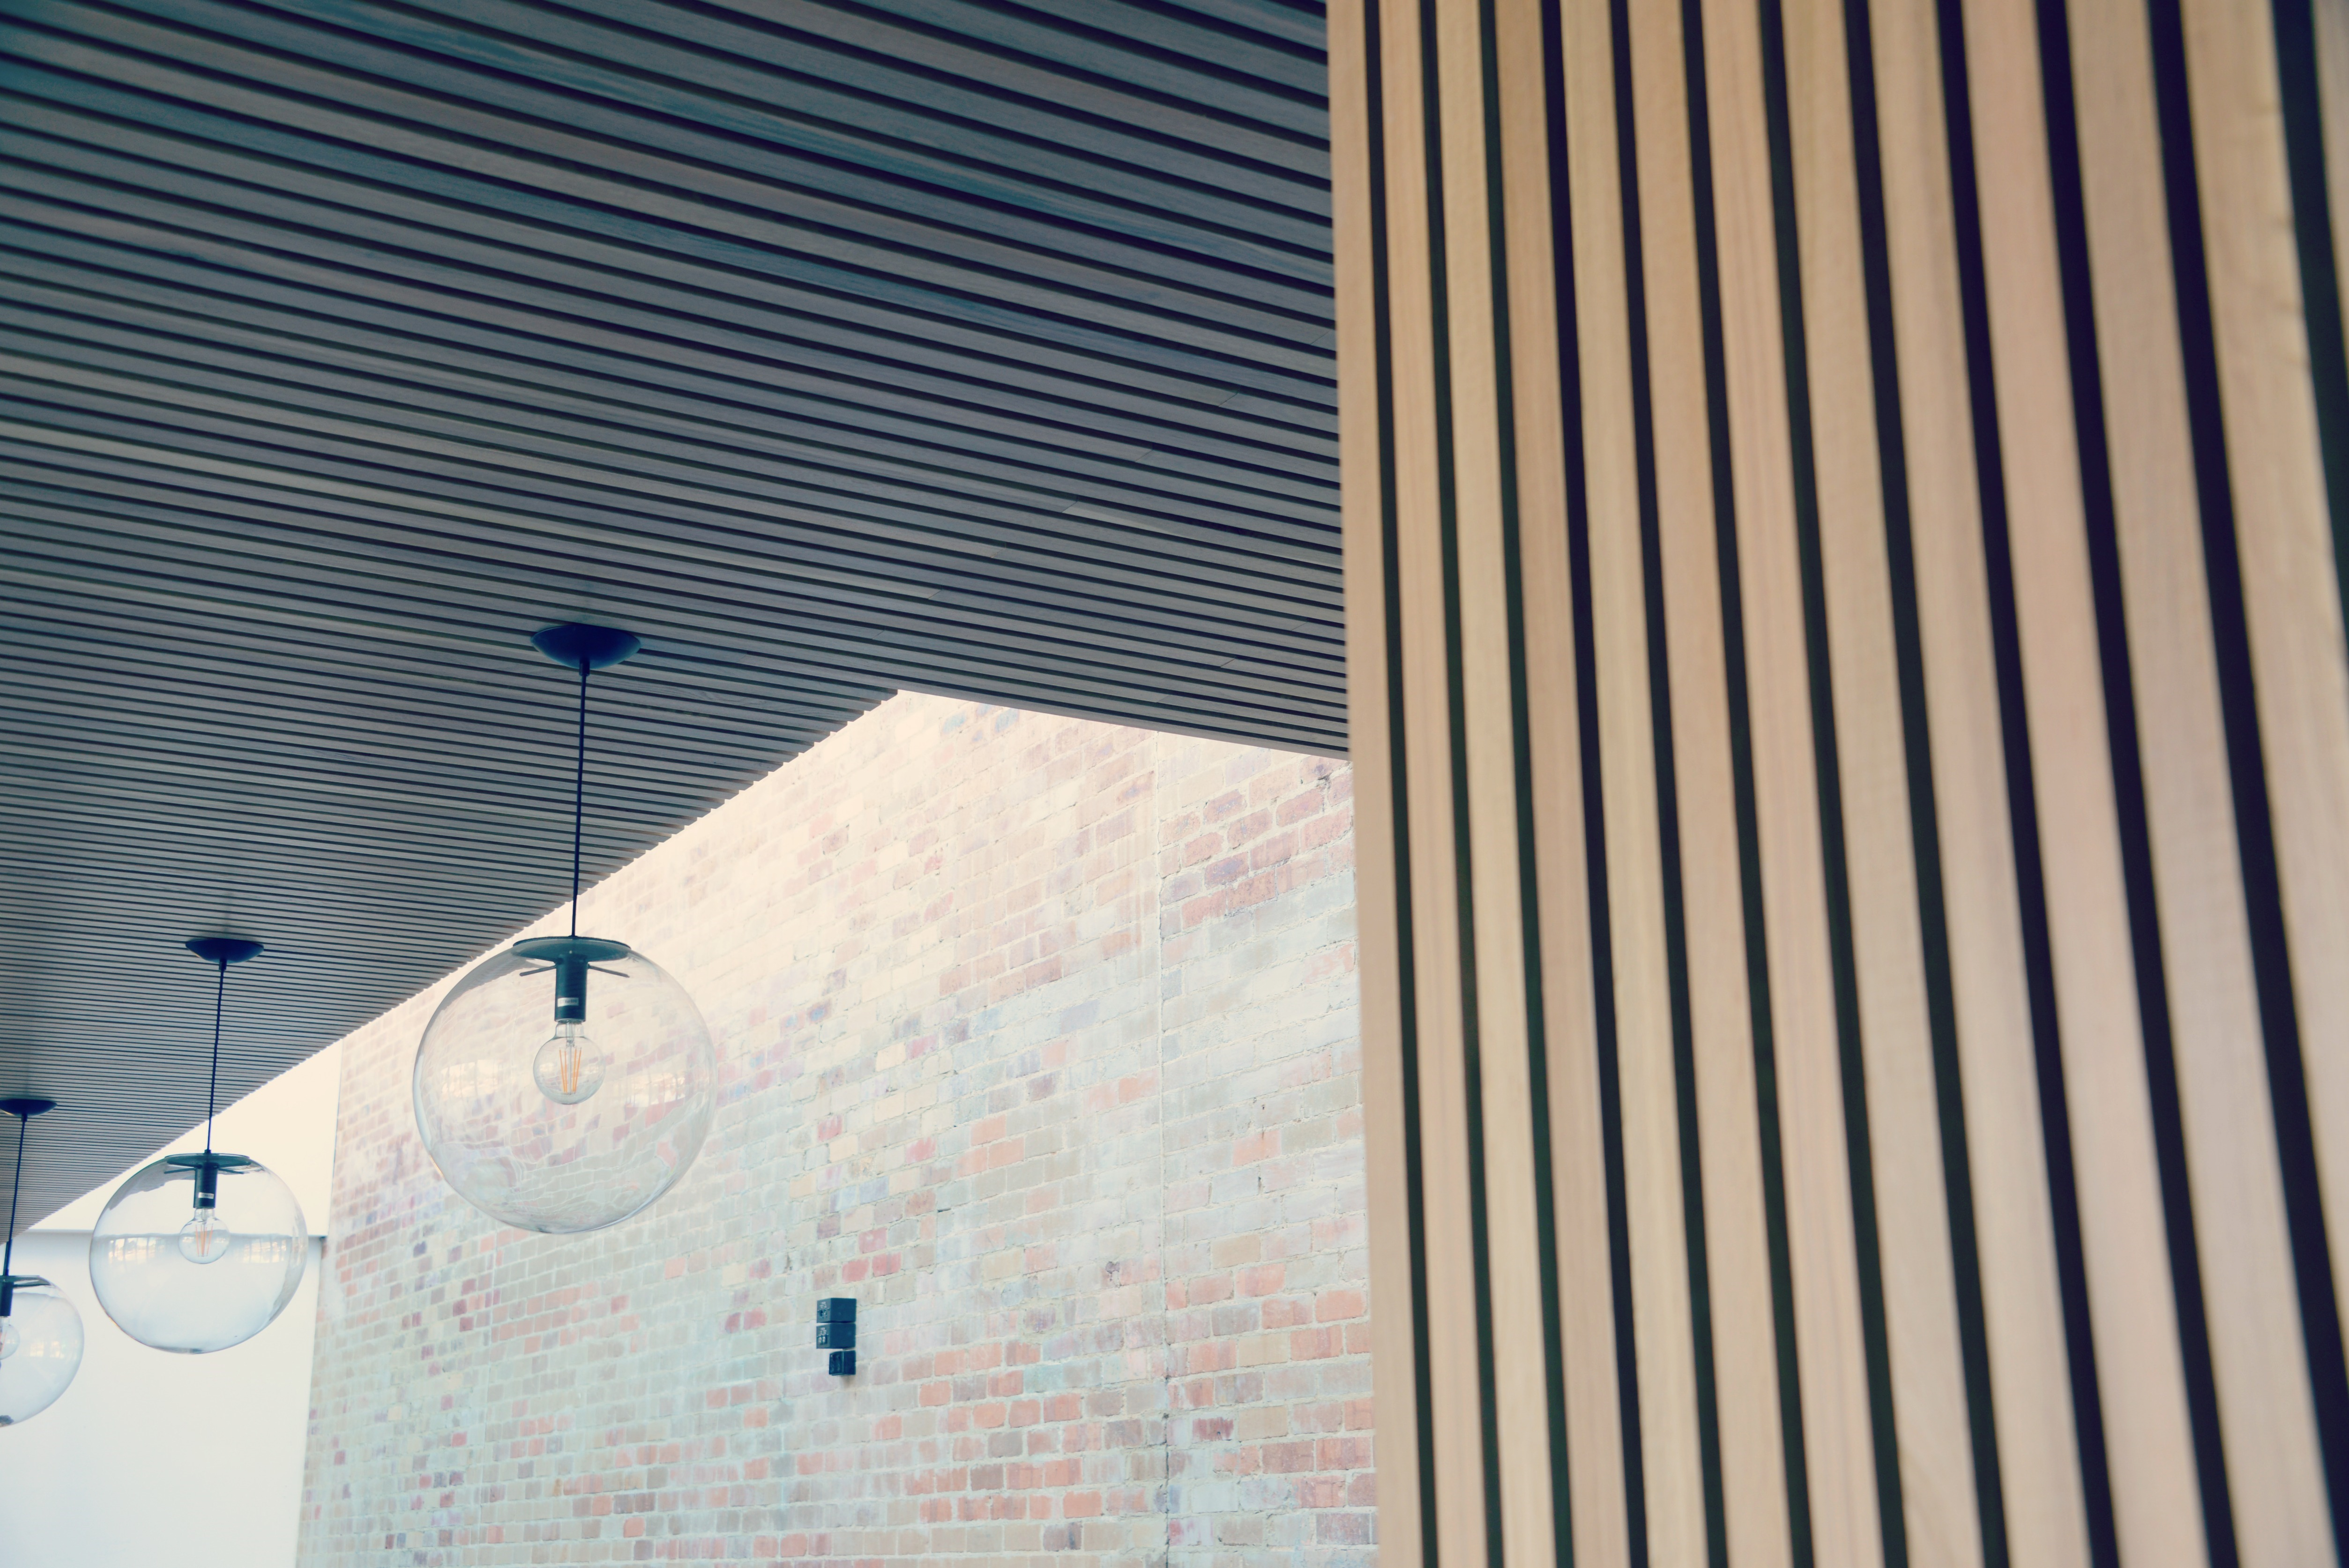 Detail of lighting behind the bar in the forecourt